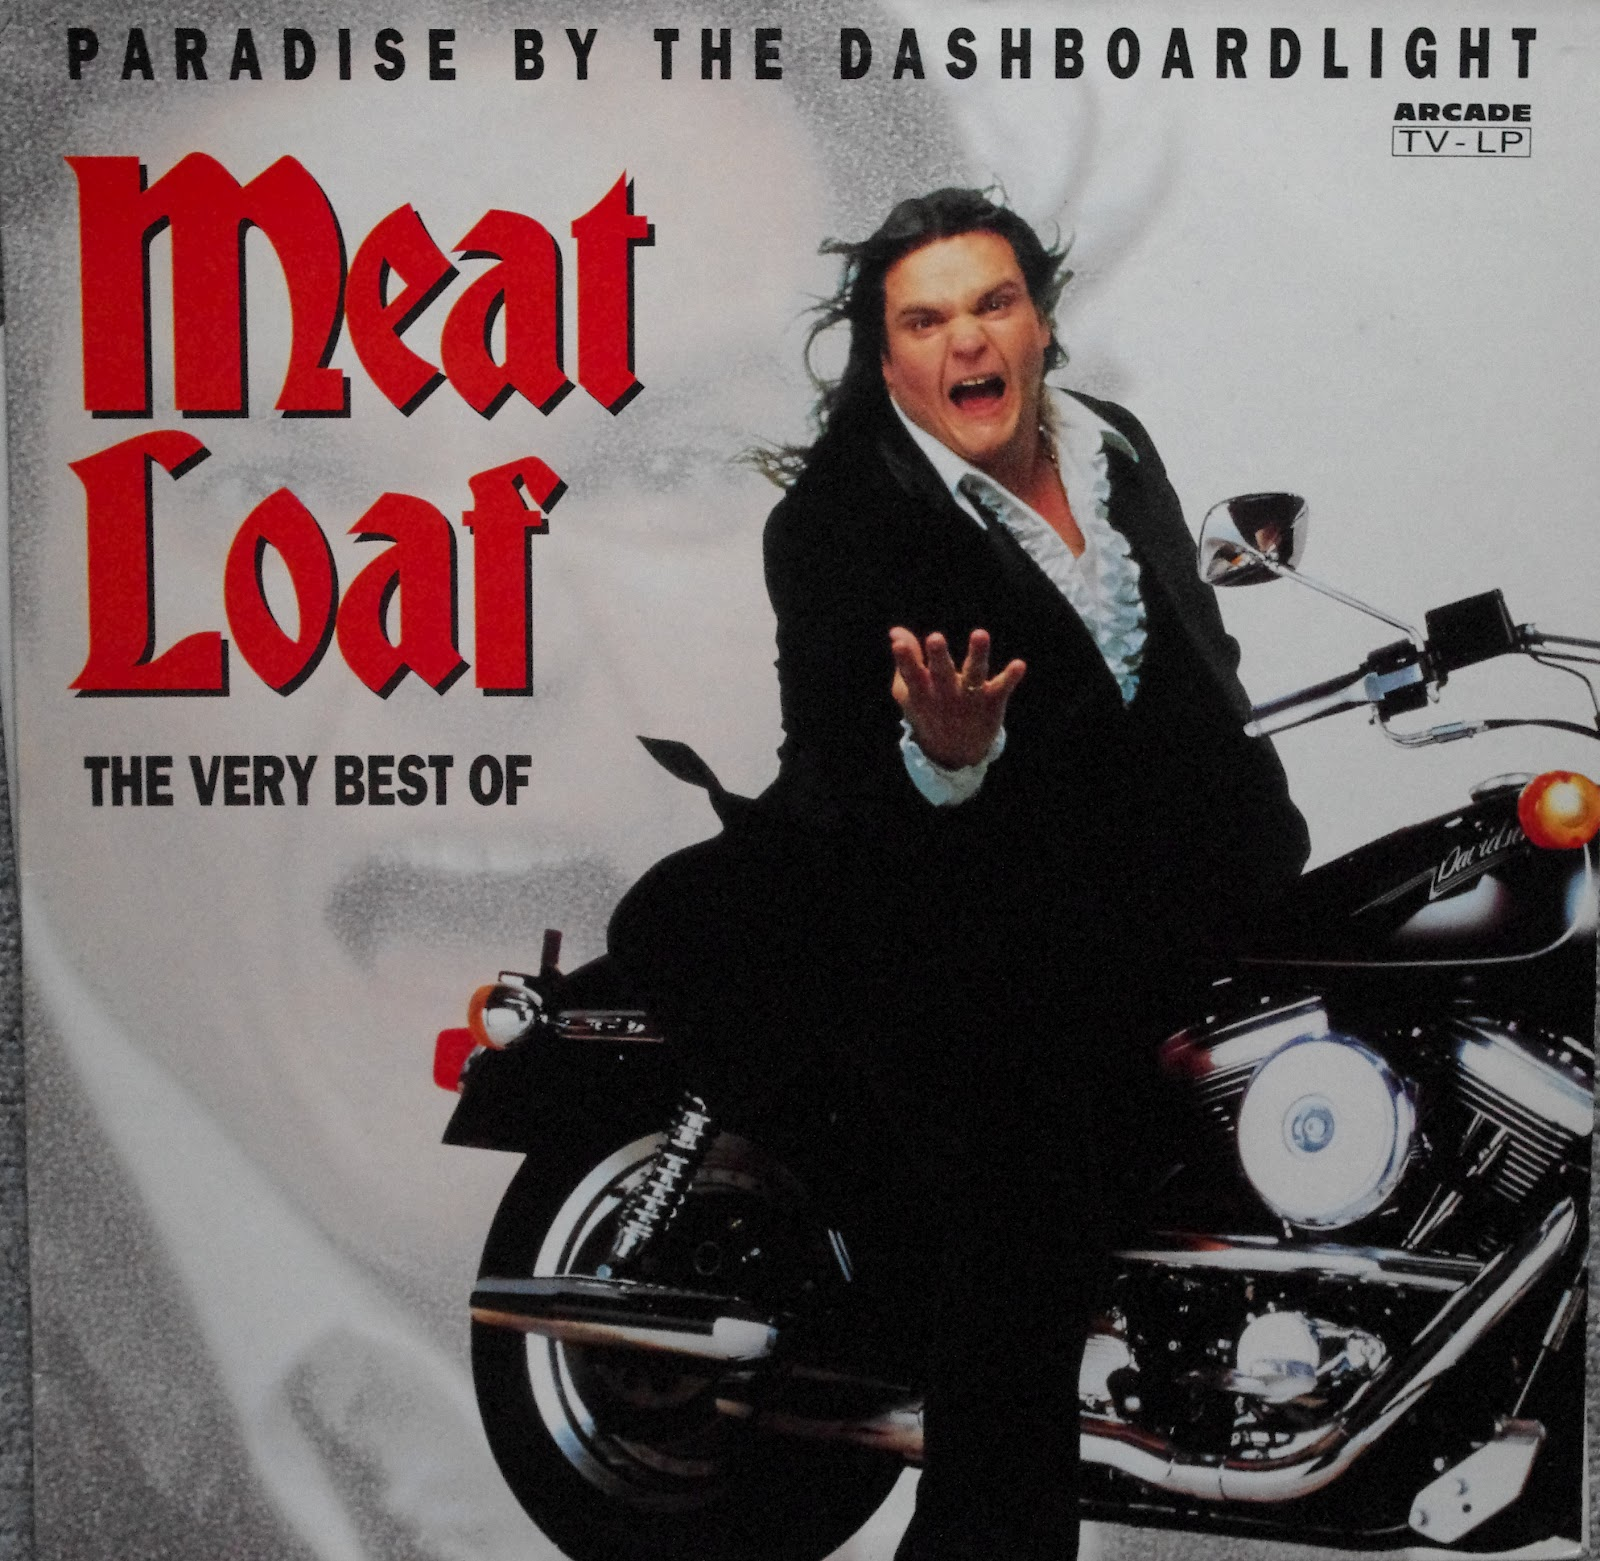 Meat Loaf Vinyl Singles 7 Quot 12 Quot And Other Stuff Meat